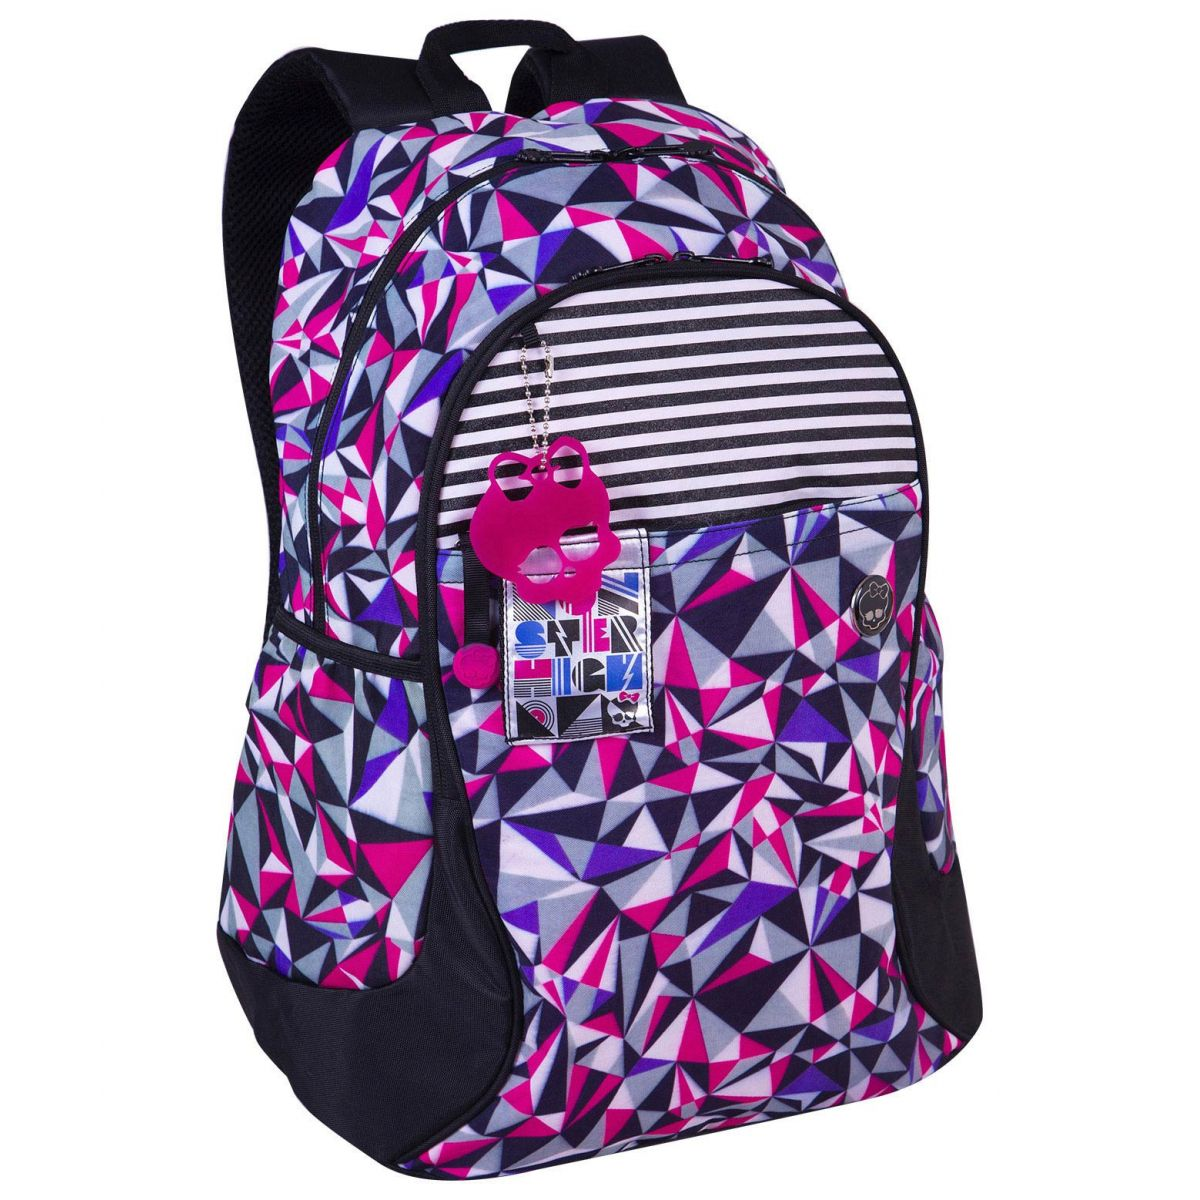 Mochila Costas Grande Monster High Roxa/Rosa - Sestini